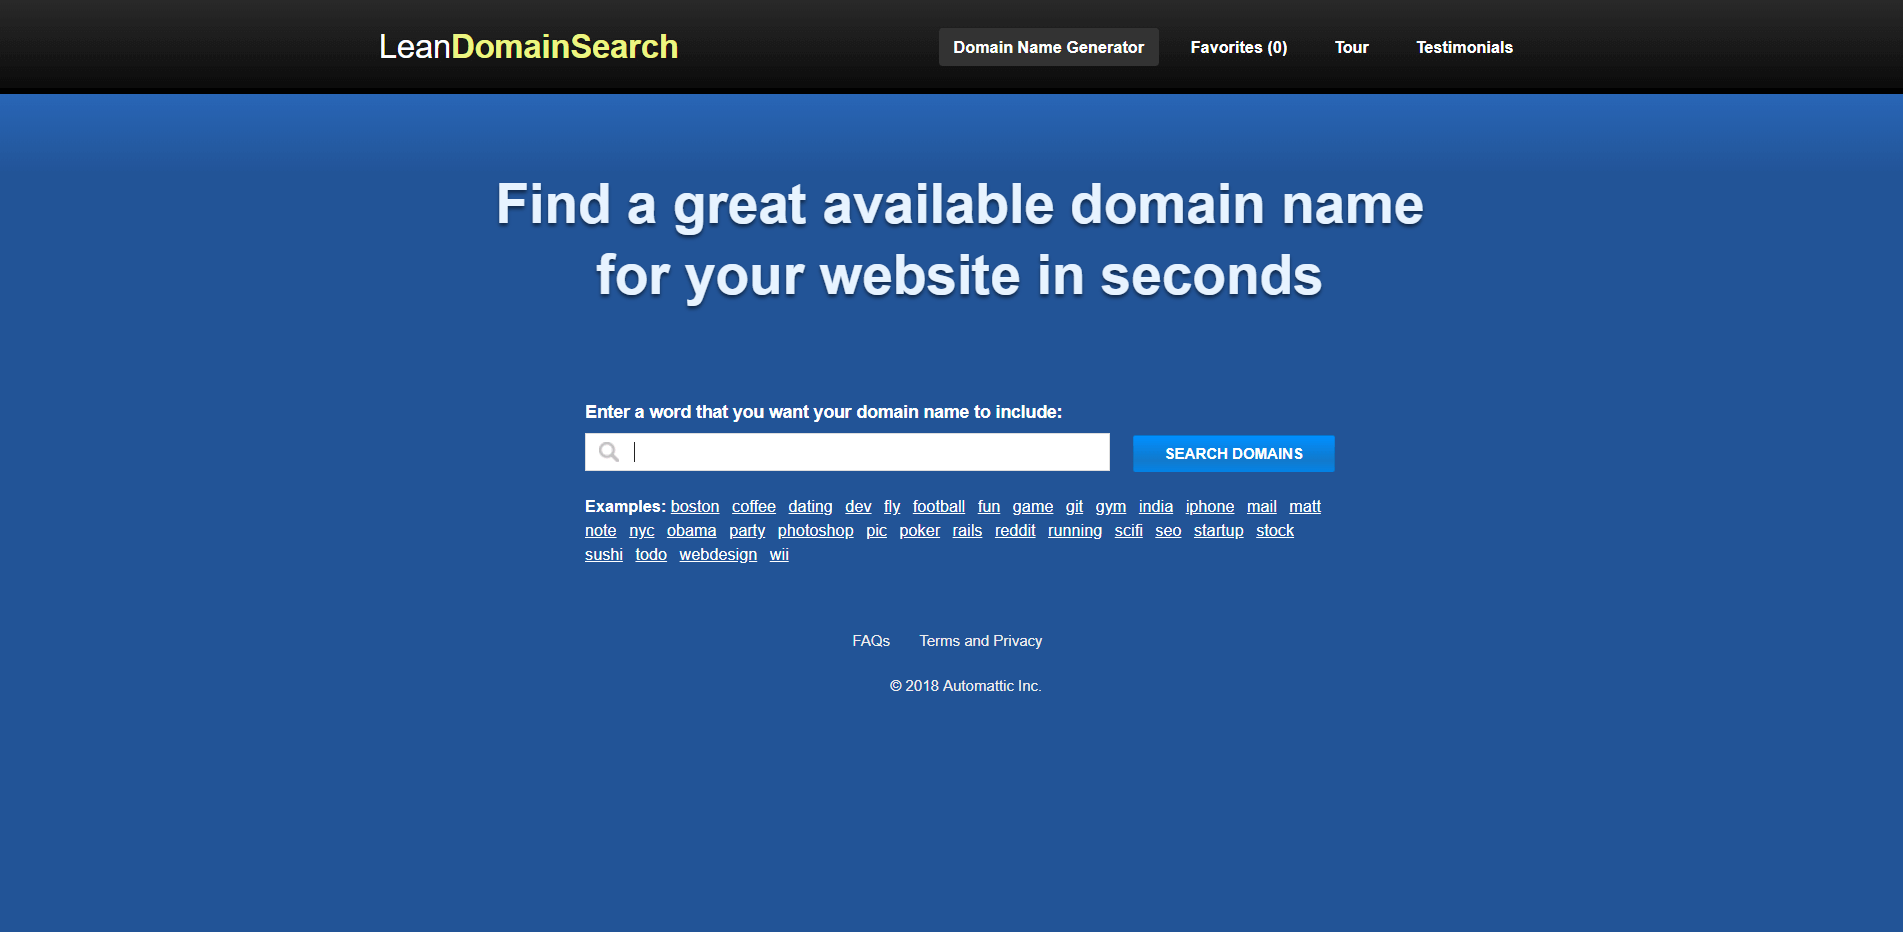 LeanDomainSearch